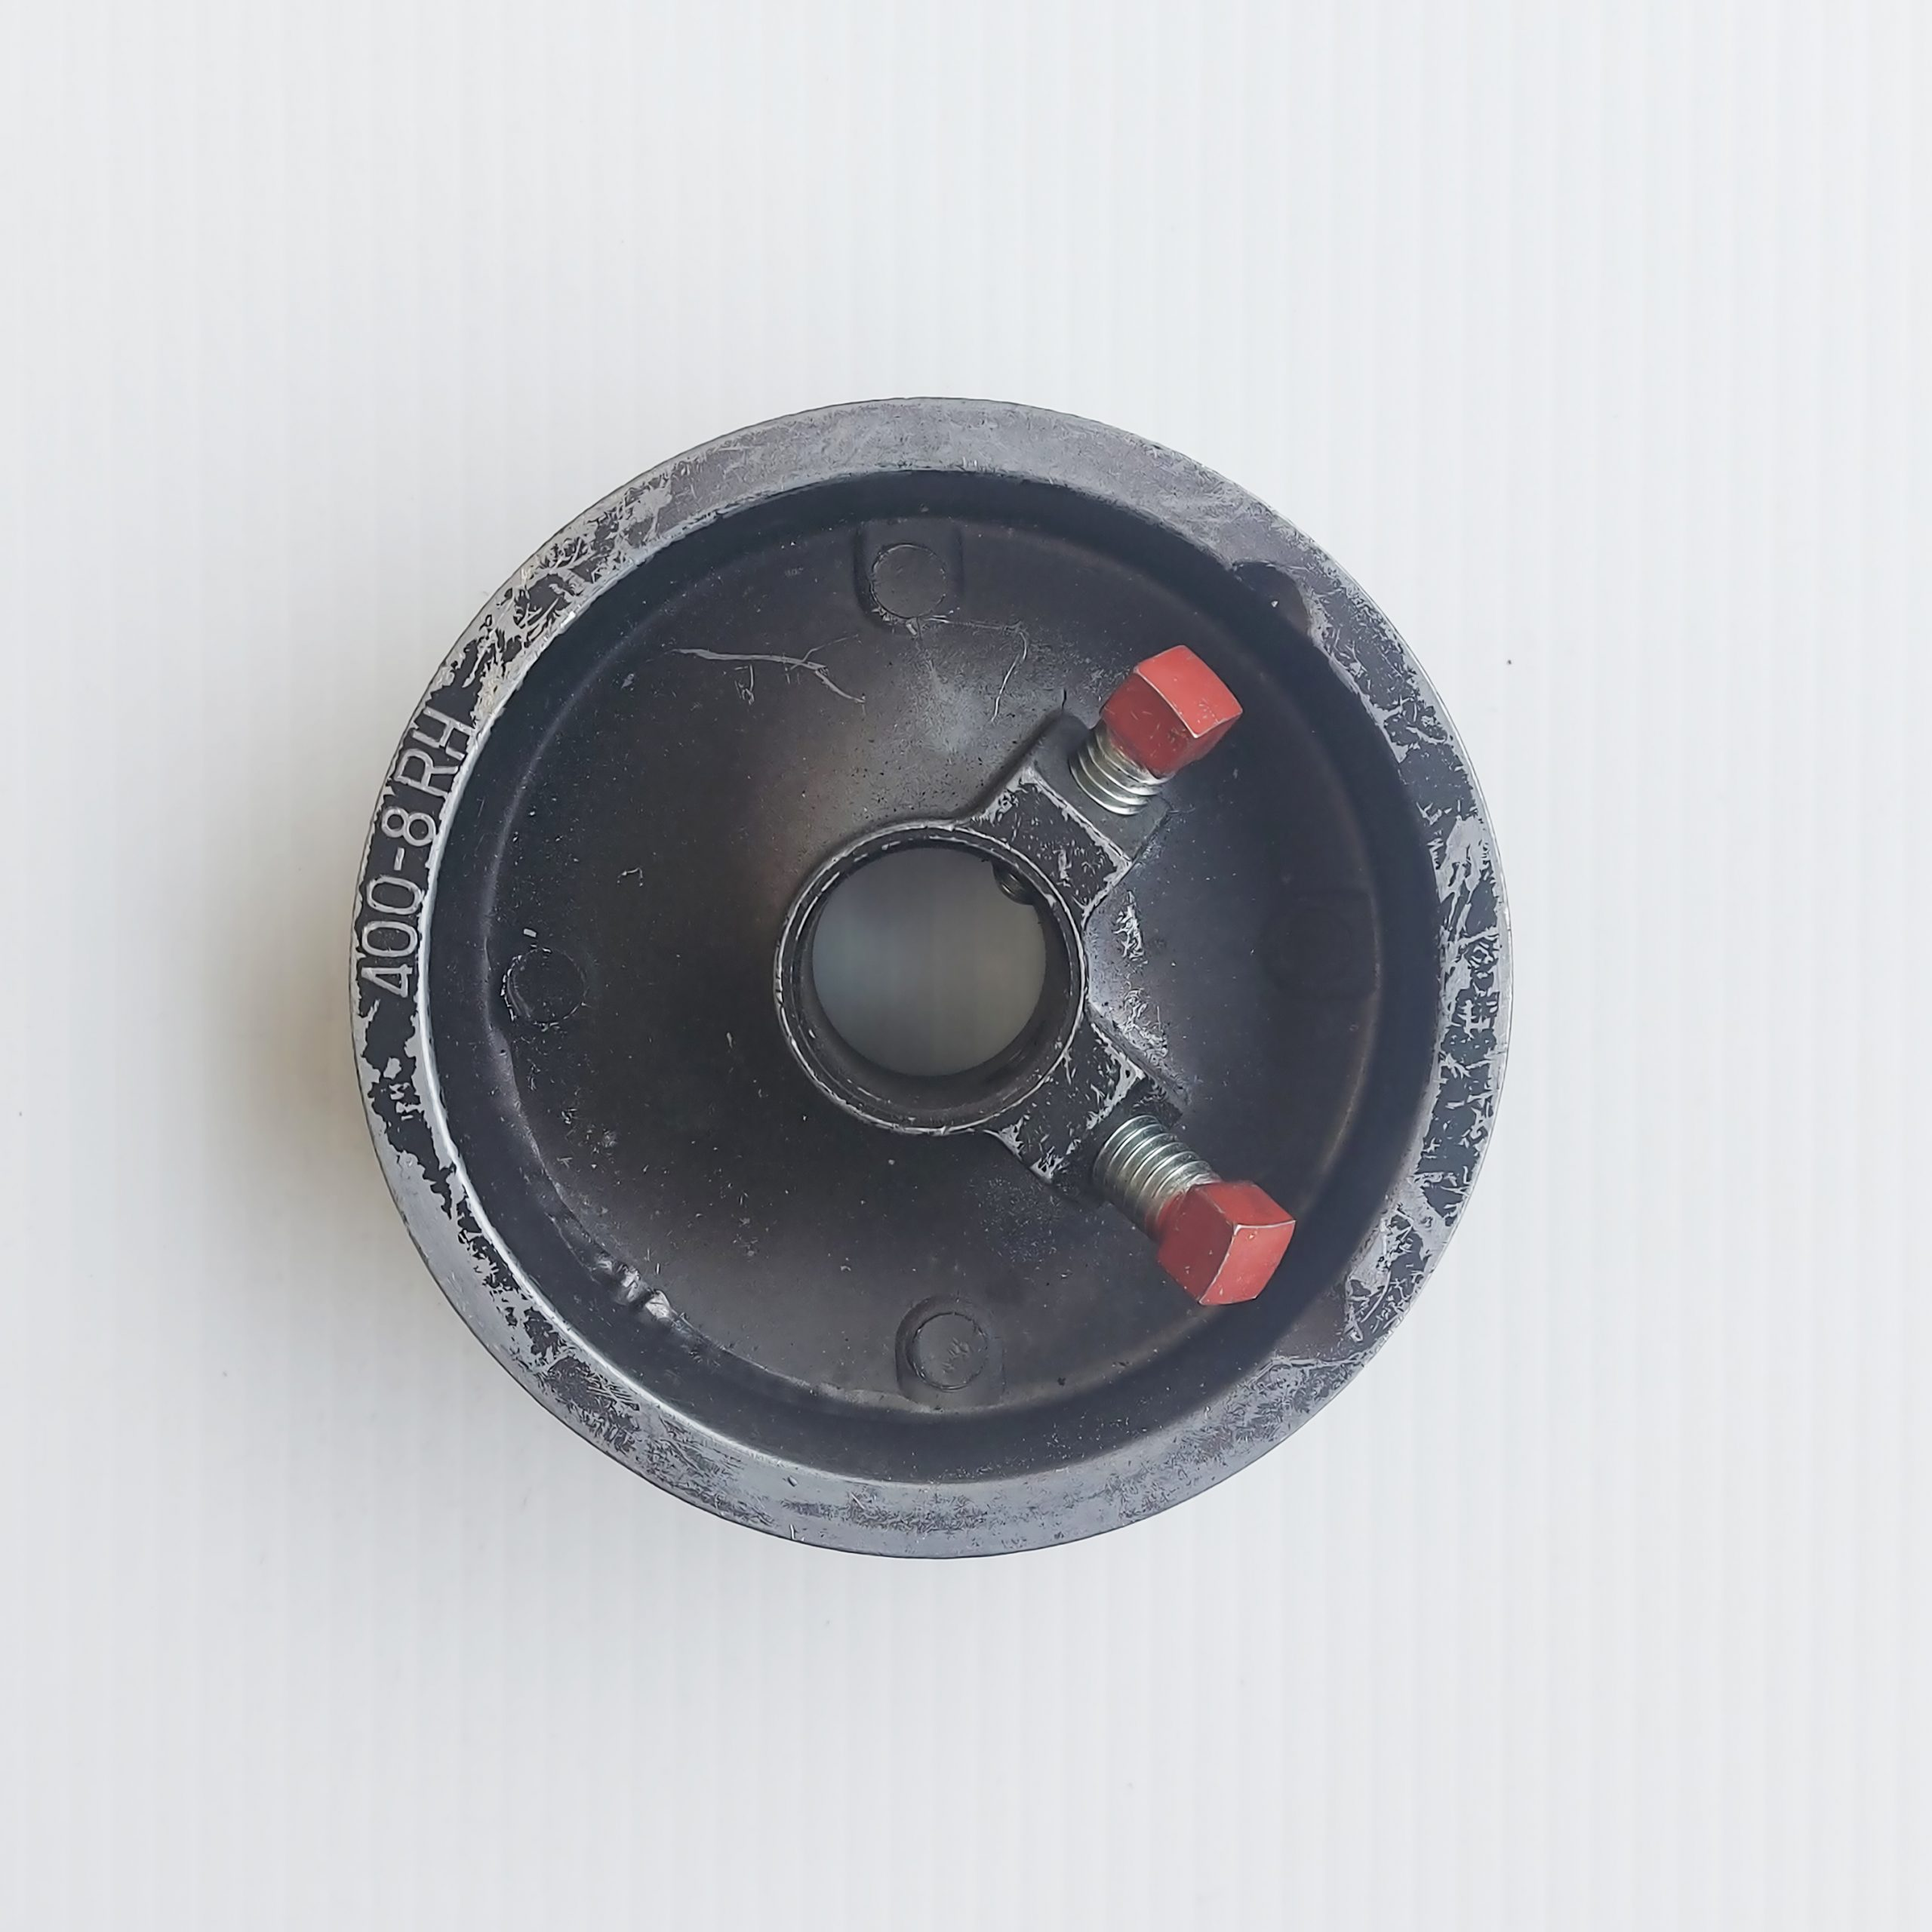 New B&D Cable Drum 400-8LH Right Hand Side